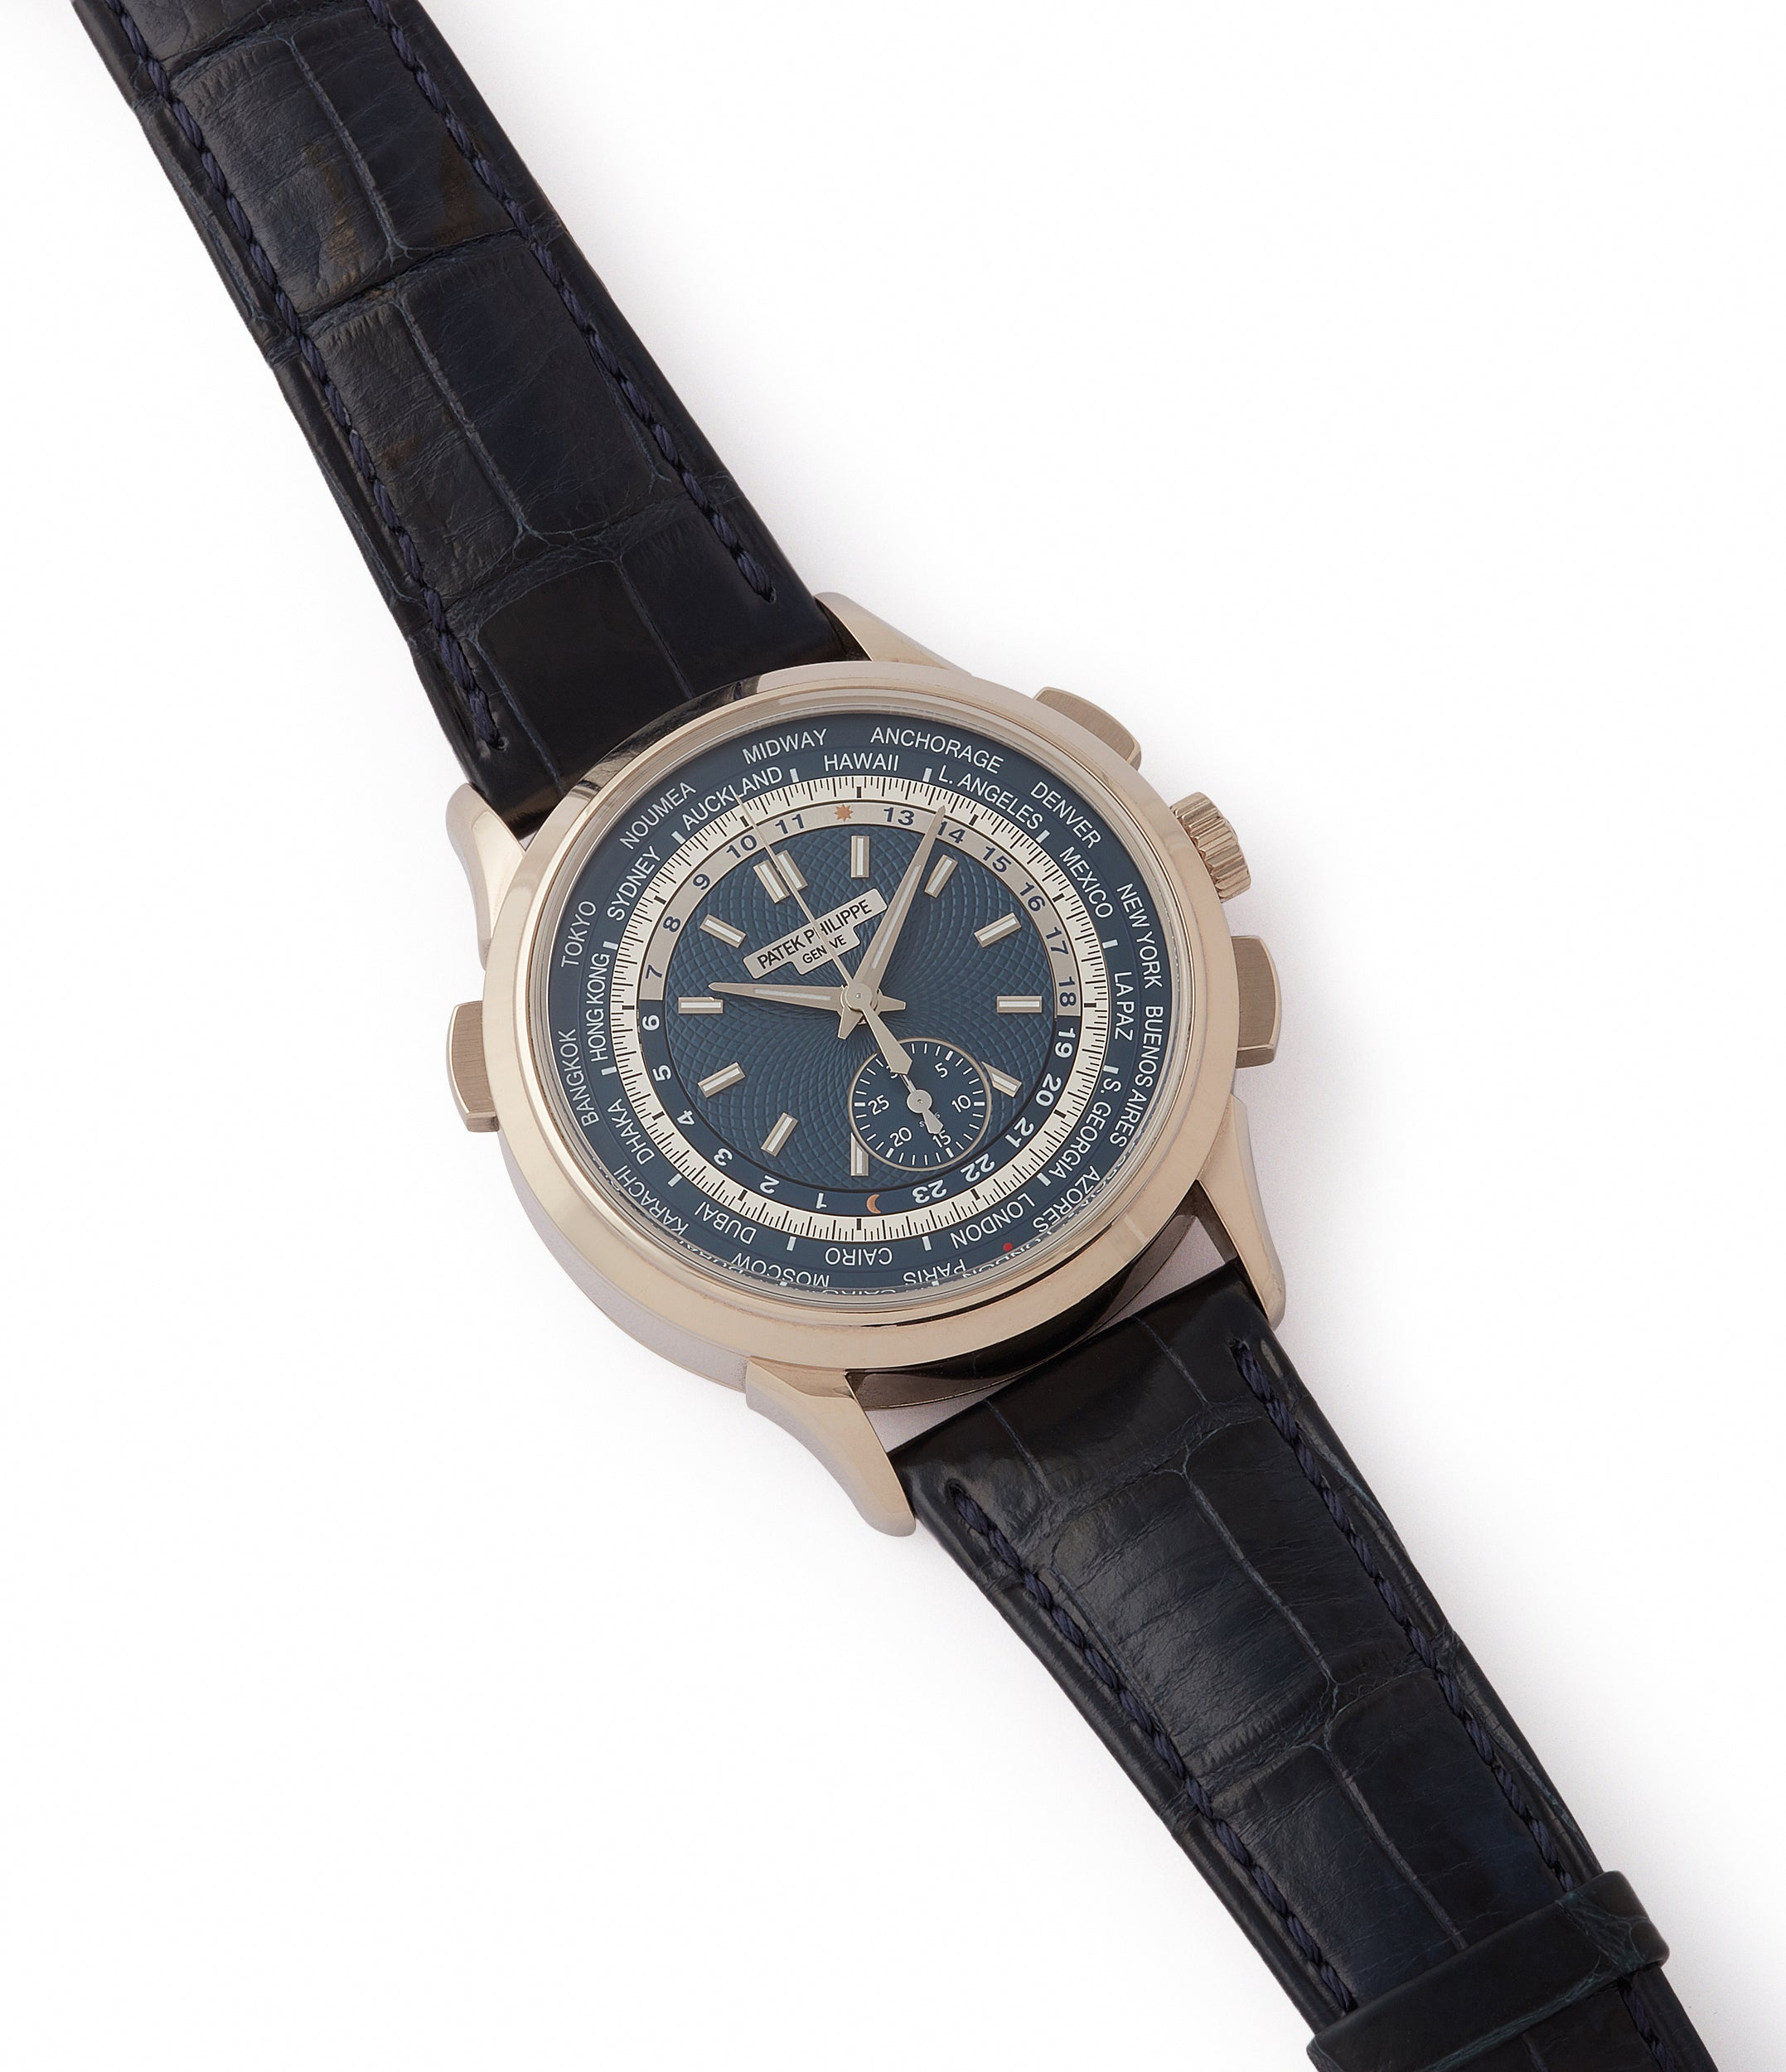 for sale Patek Philippe World Time Chronograph 5930G-001 white gold watch blue dial for sale online at A Collected Man London